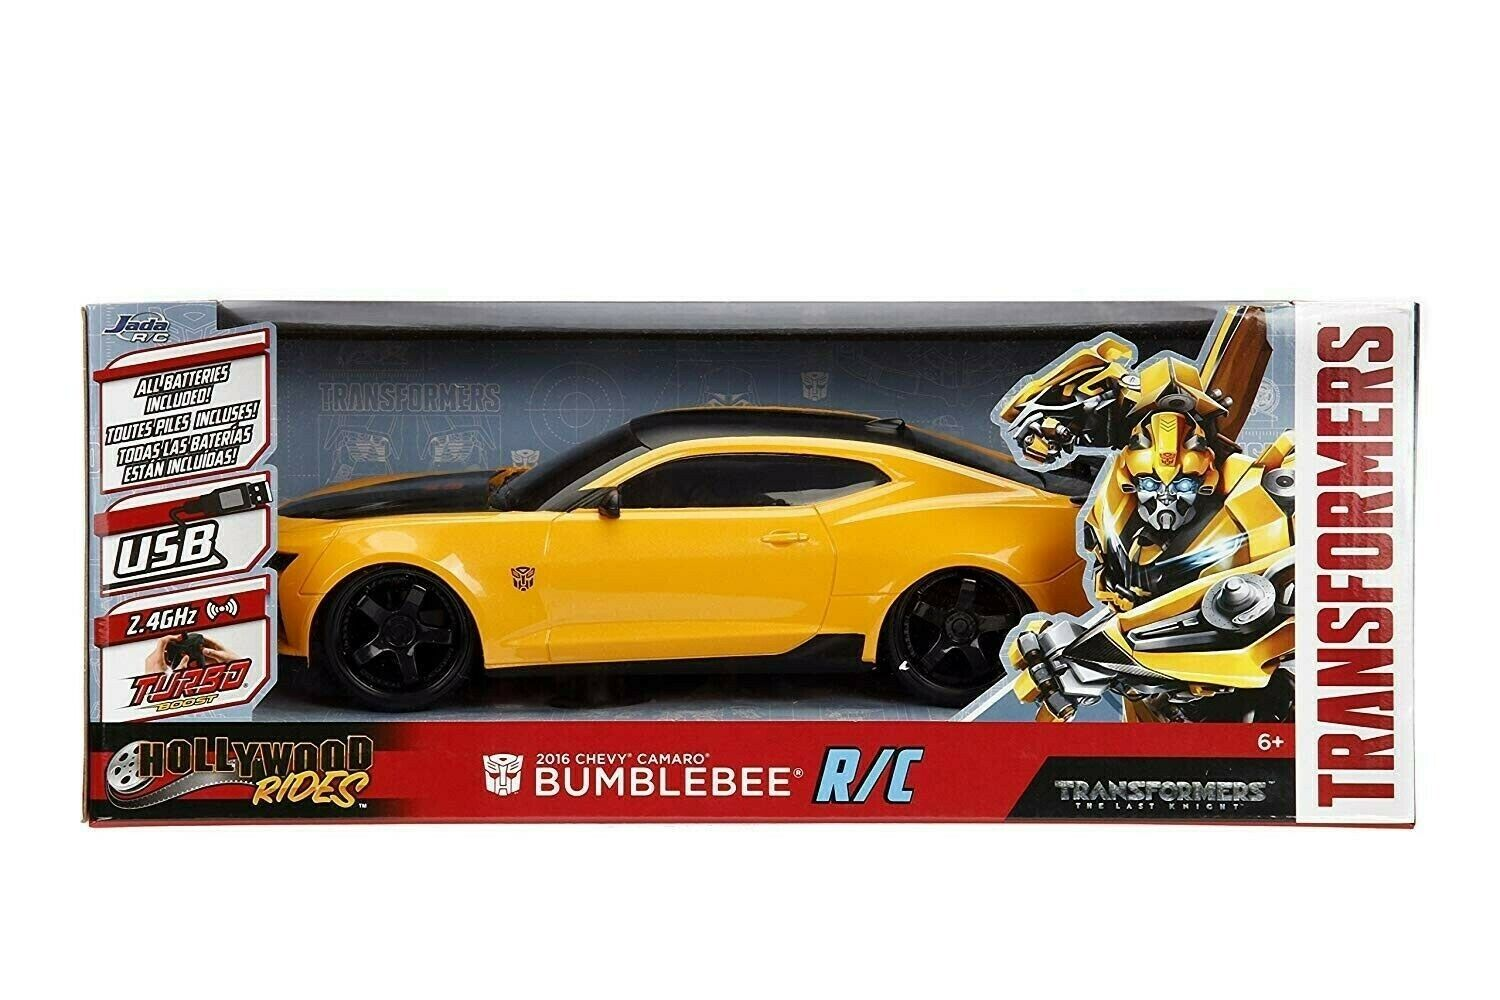 Transformers 2016 Chevy Camaro Jada Hollywood Rides The Last Knight Bumblebee RC